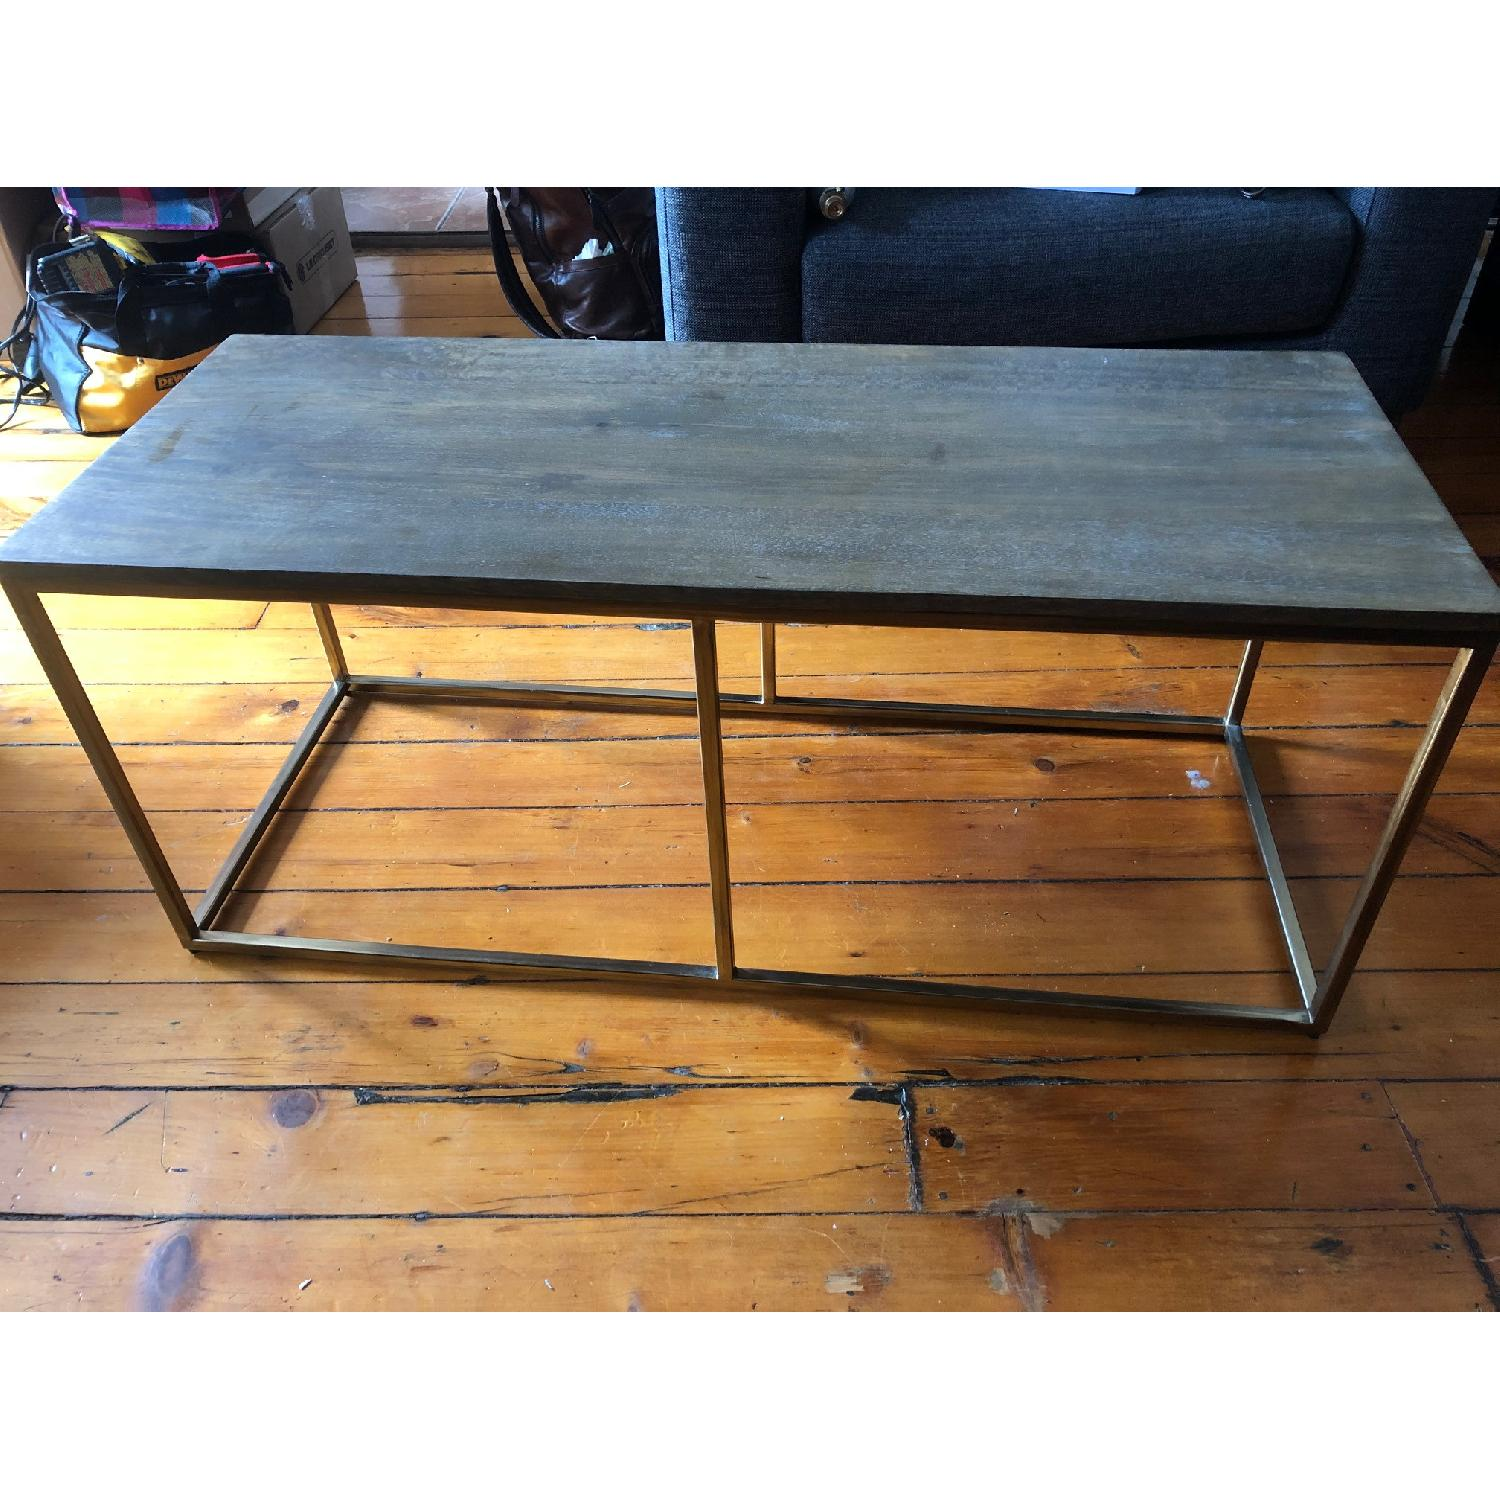 Pottery Barn Delaney Coffee Table Wood/French Grey - image-0